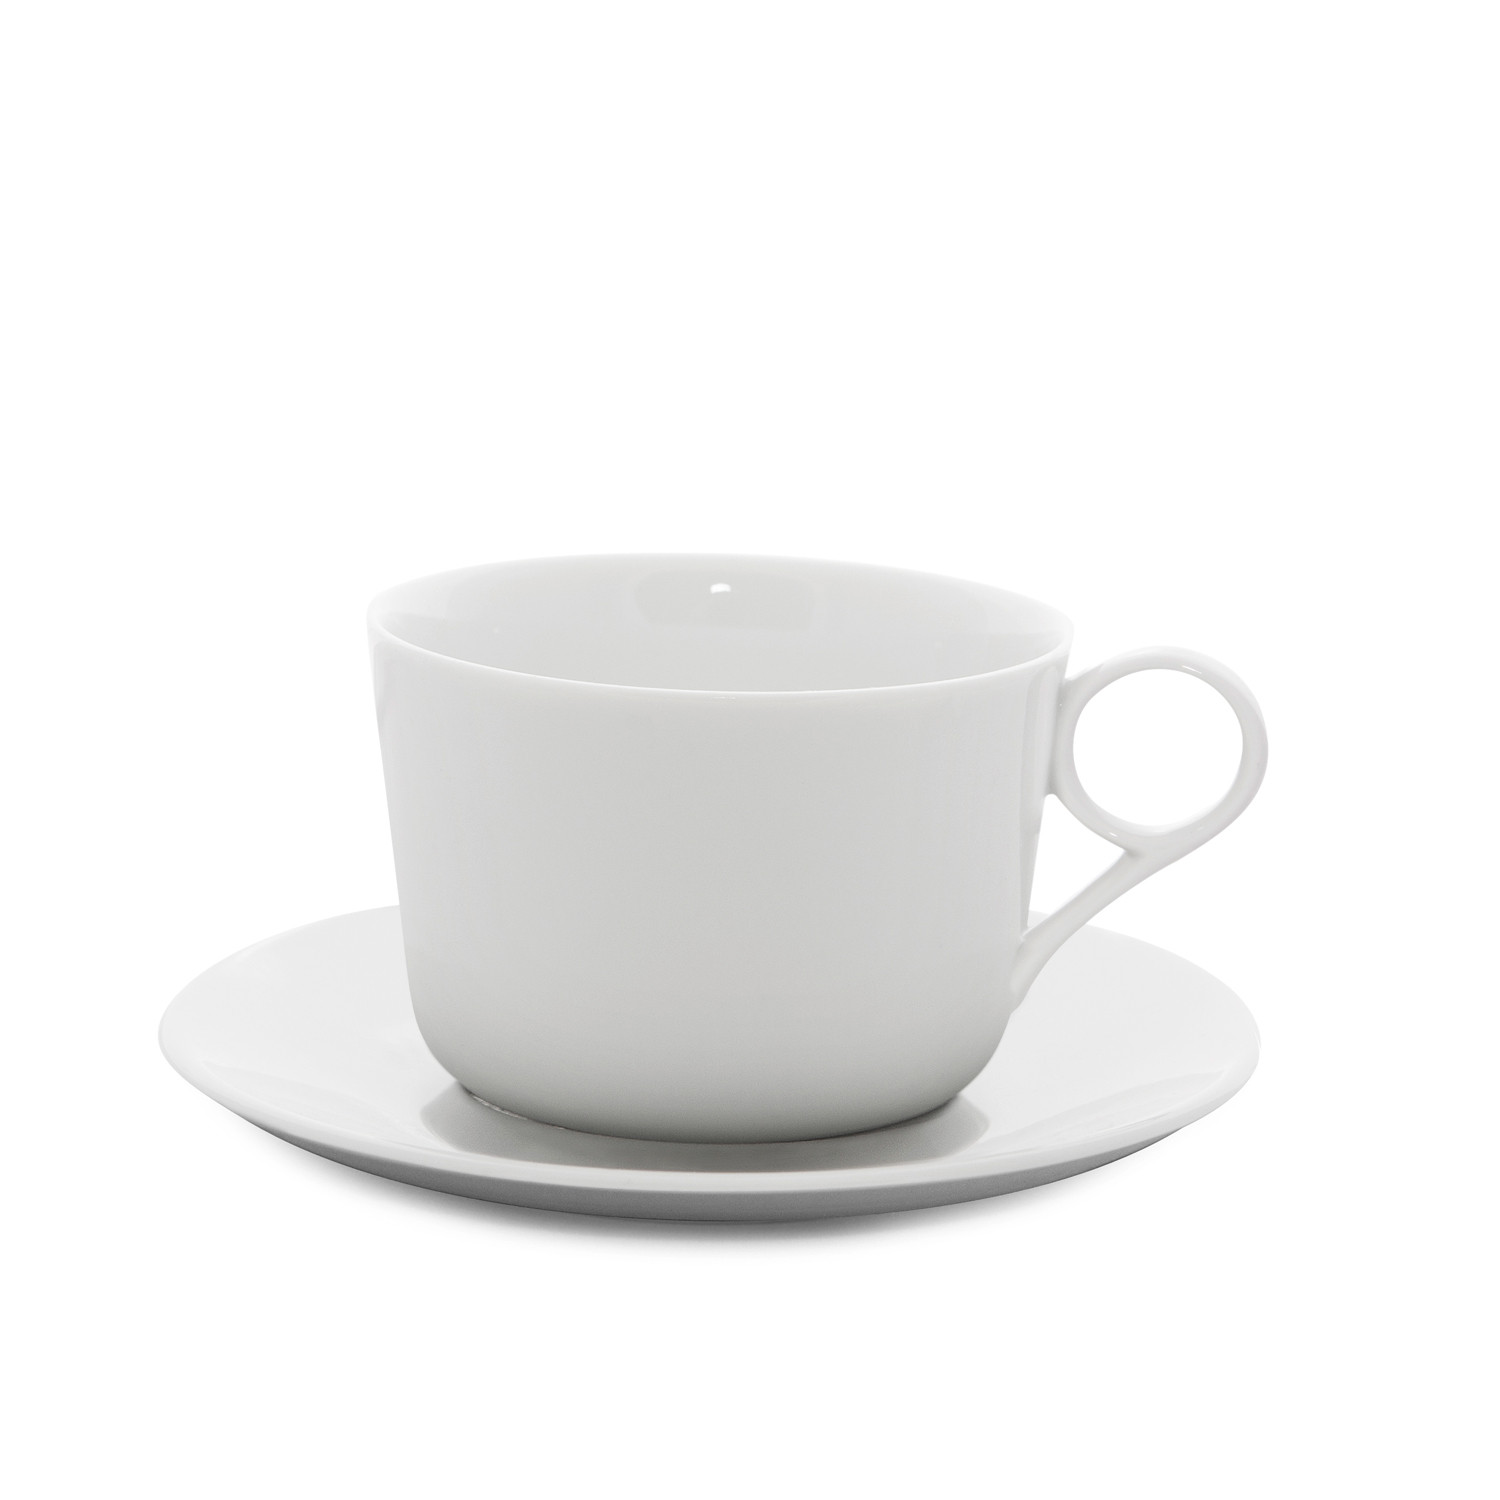 Assorted Me Coffee Cup Me Coffee Cup Ladp Touch Small Coffee Cups Small Coffee Cup Lid Bulk furniture Small White Coffee Cups